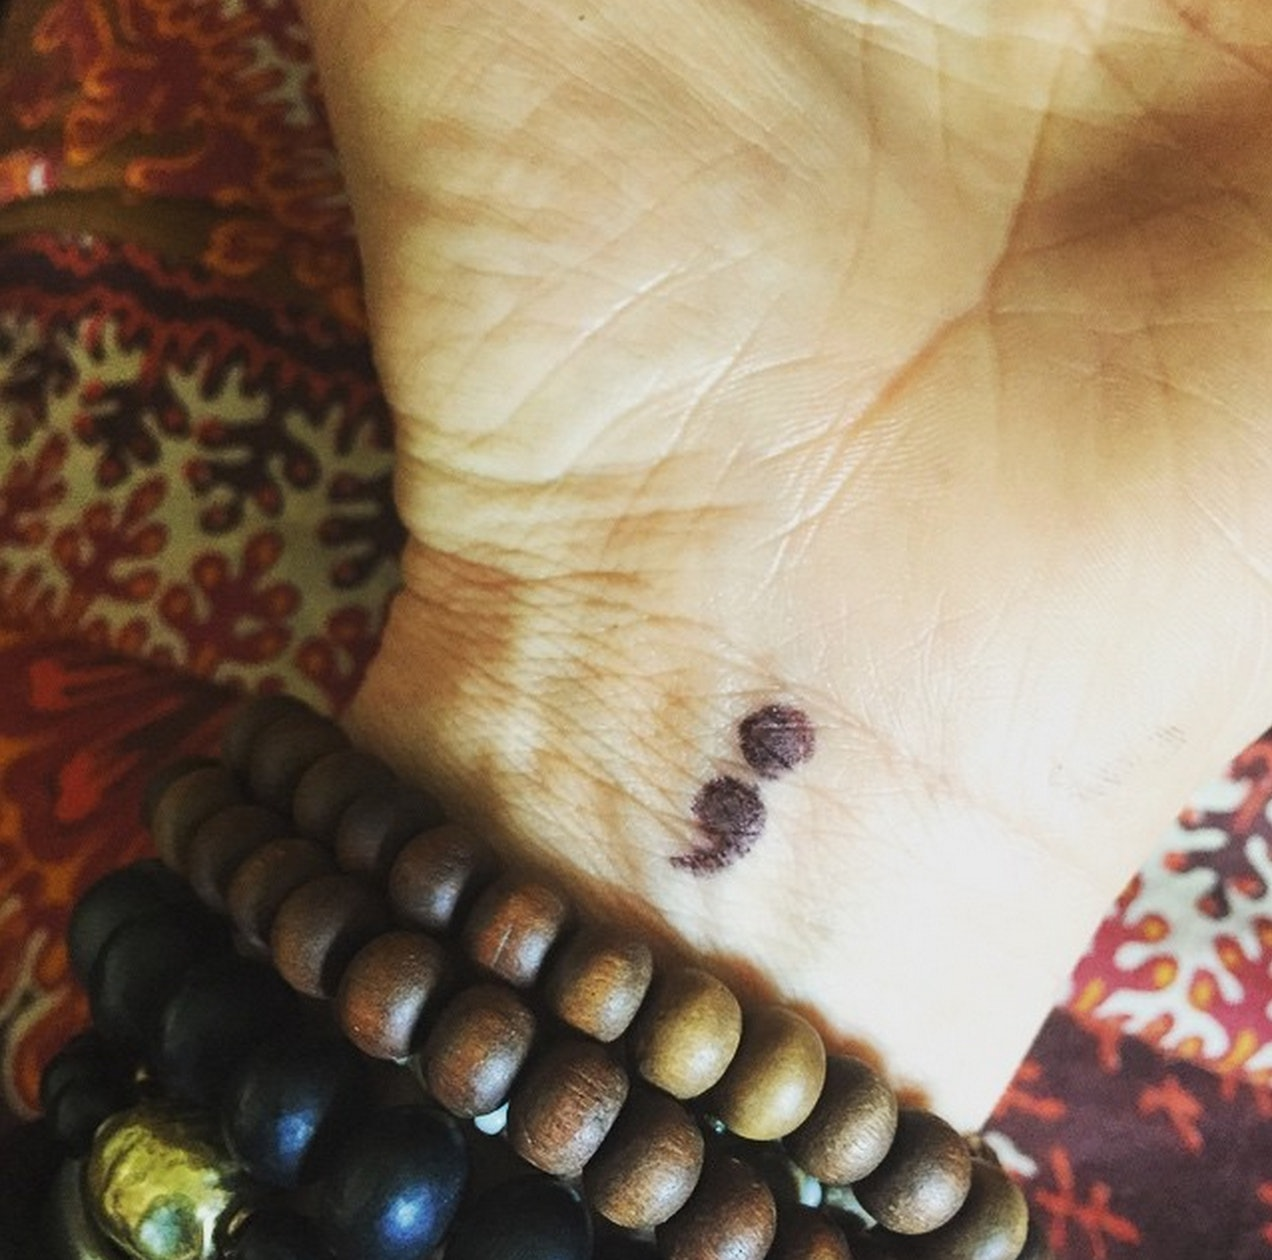 What does a semicolon tattoo mean how the semicolon project is how the semicolon project is using the symbol to support people with mental illness photos buycottarizona Image collections